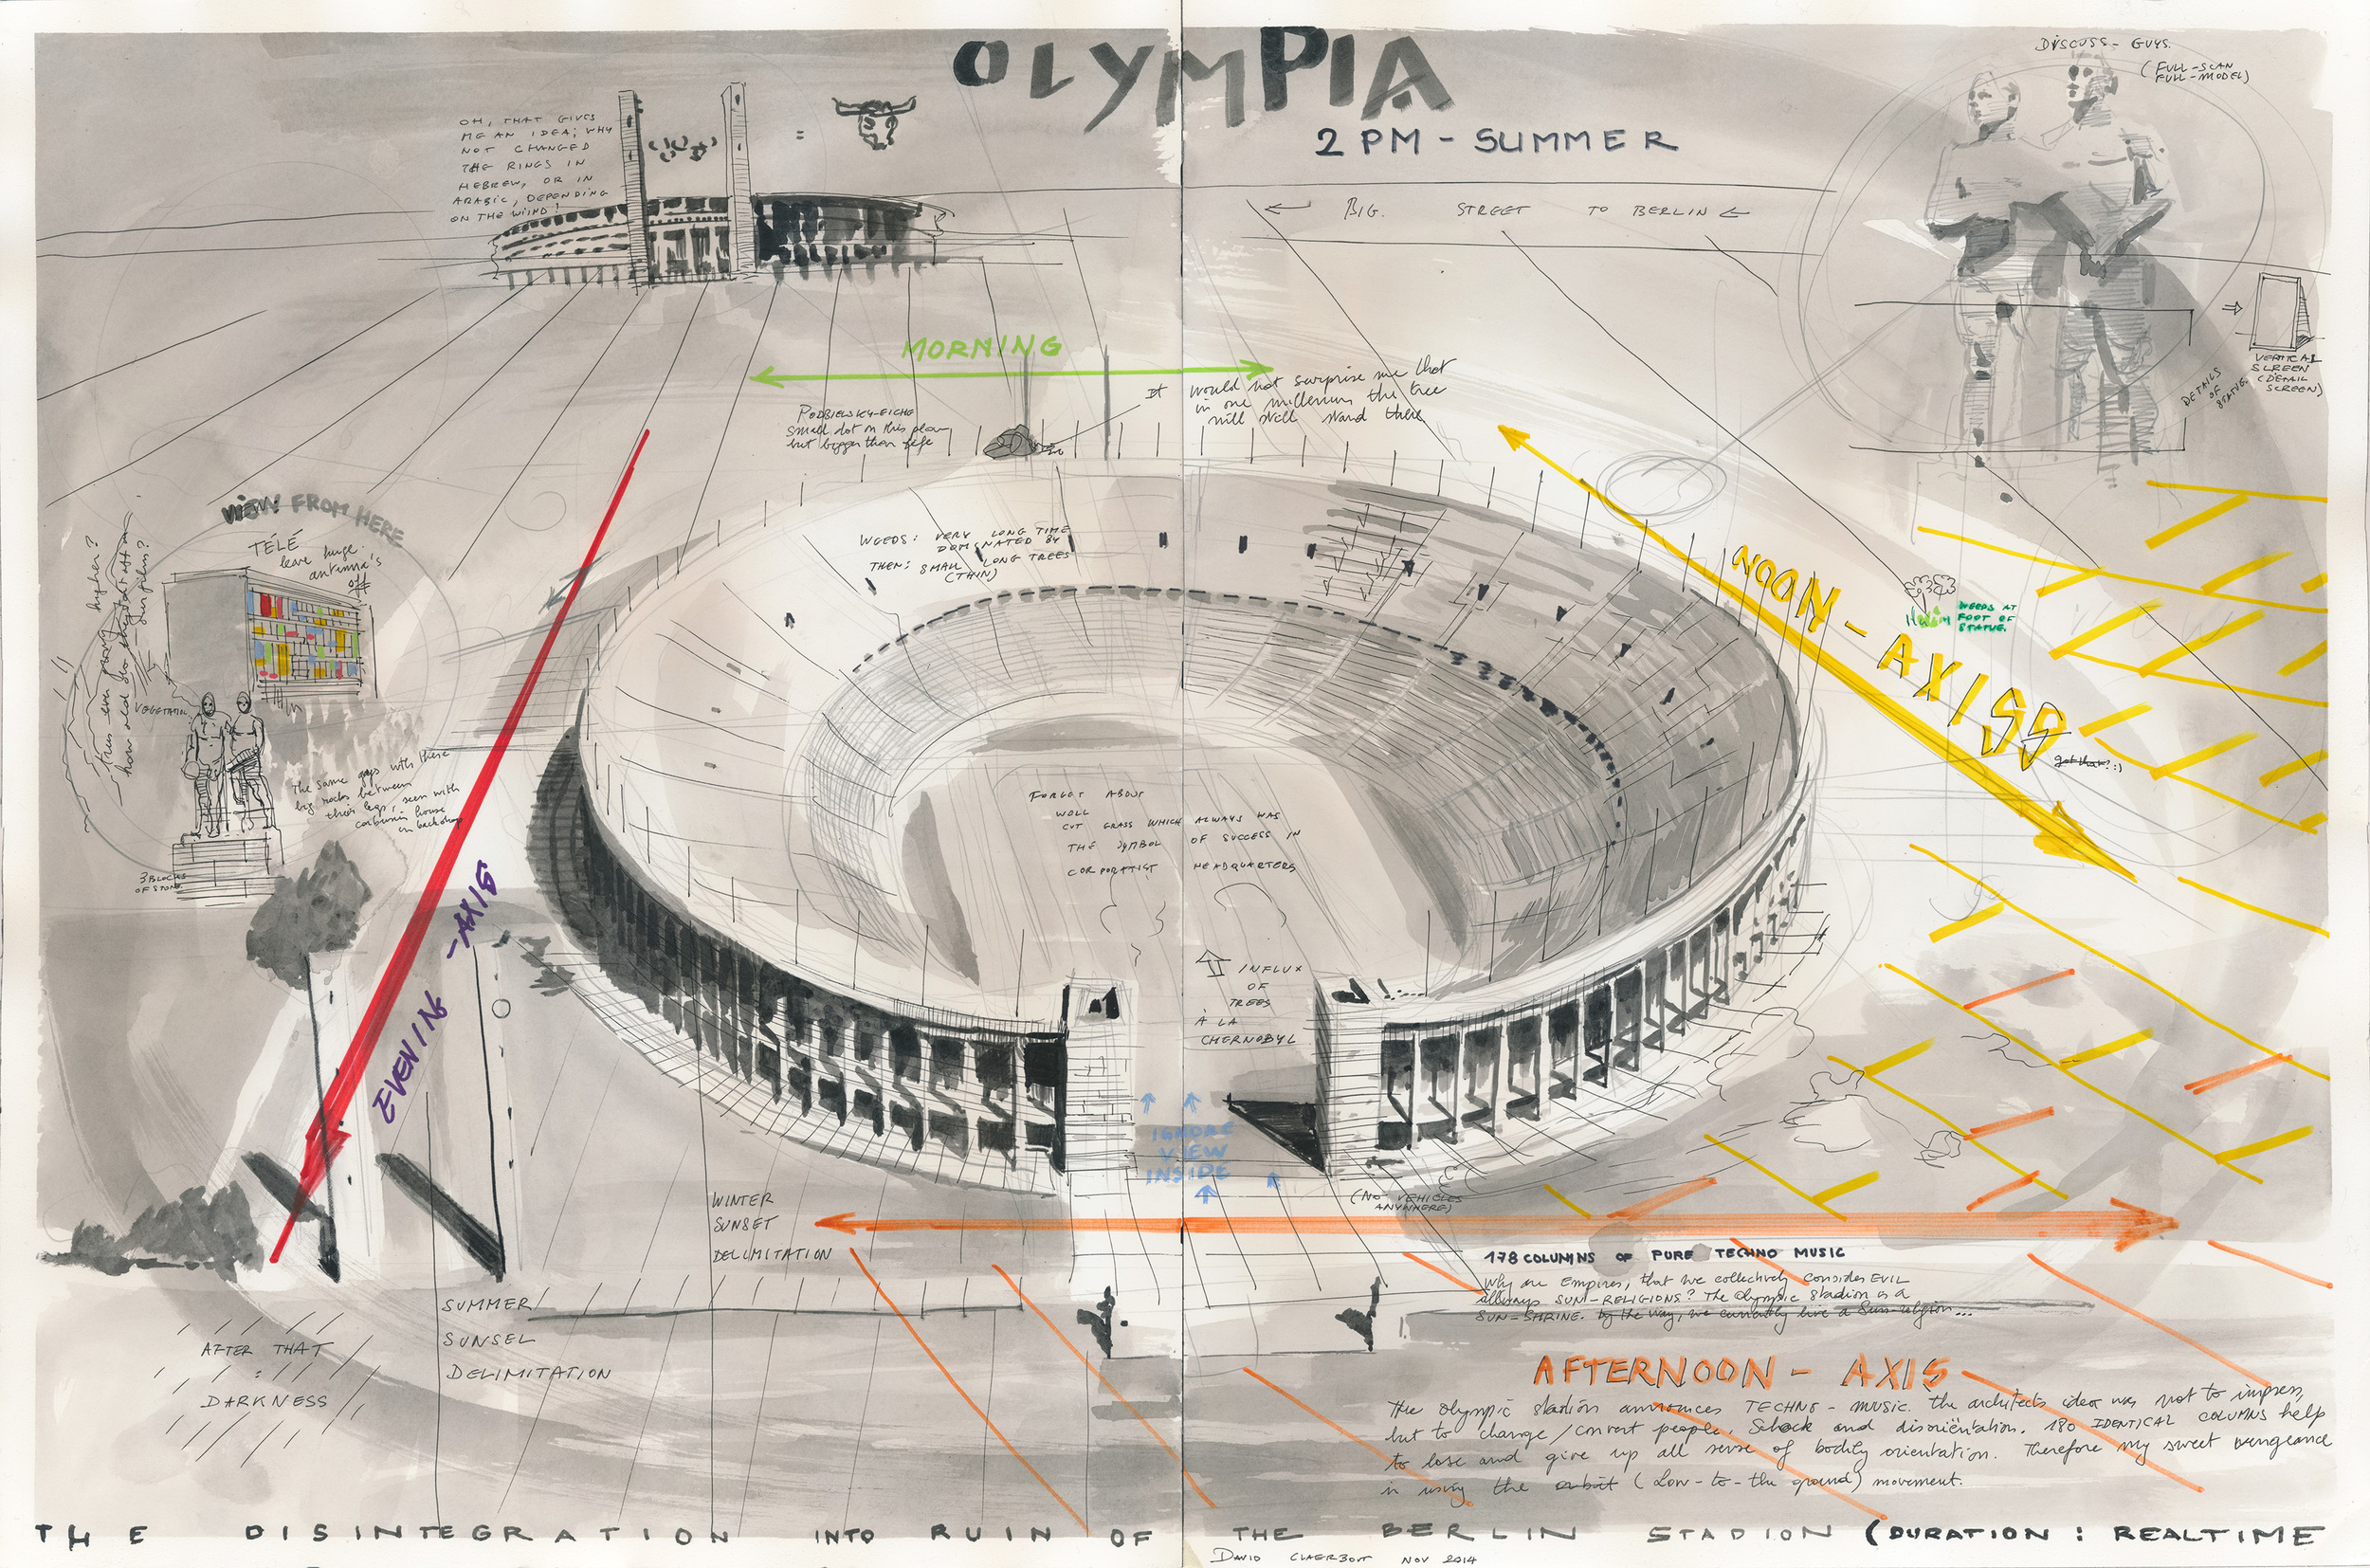 DC-35 Olympia Stadion drawing (2PM summer), 2014